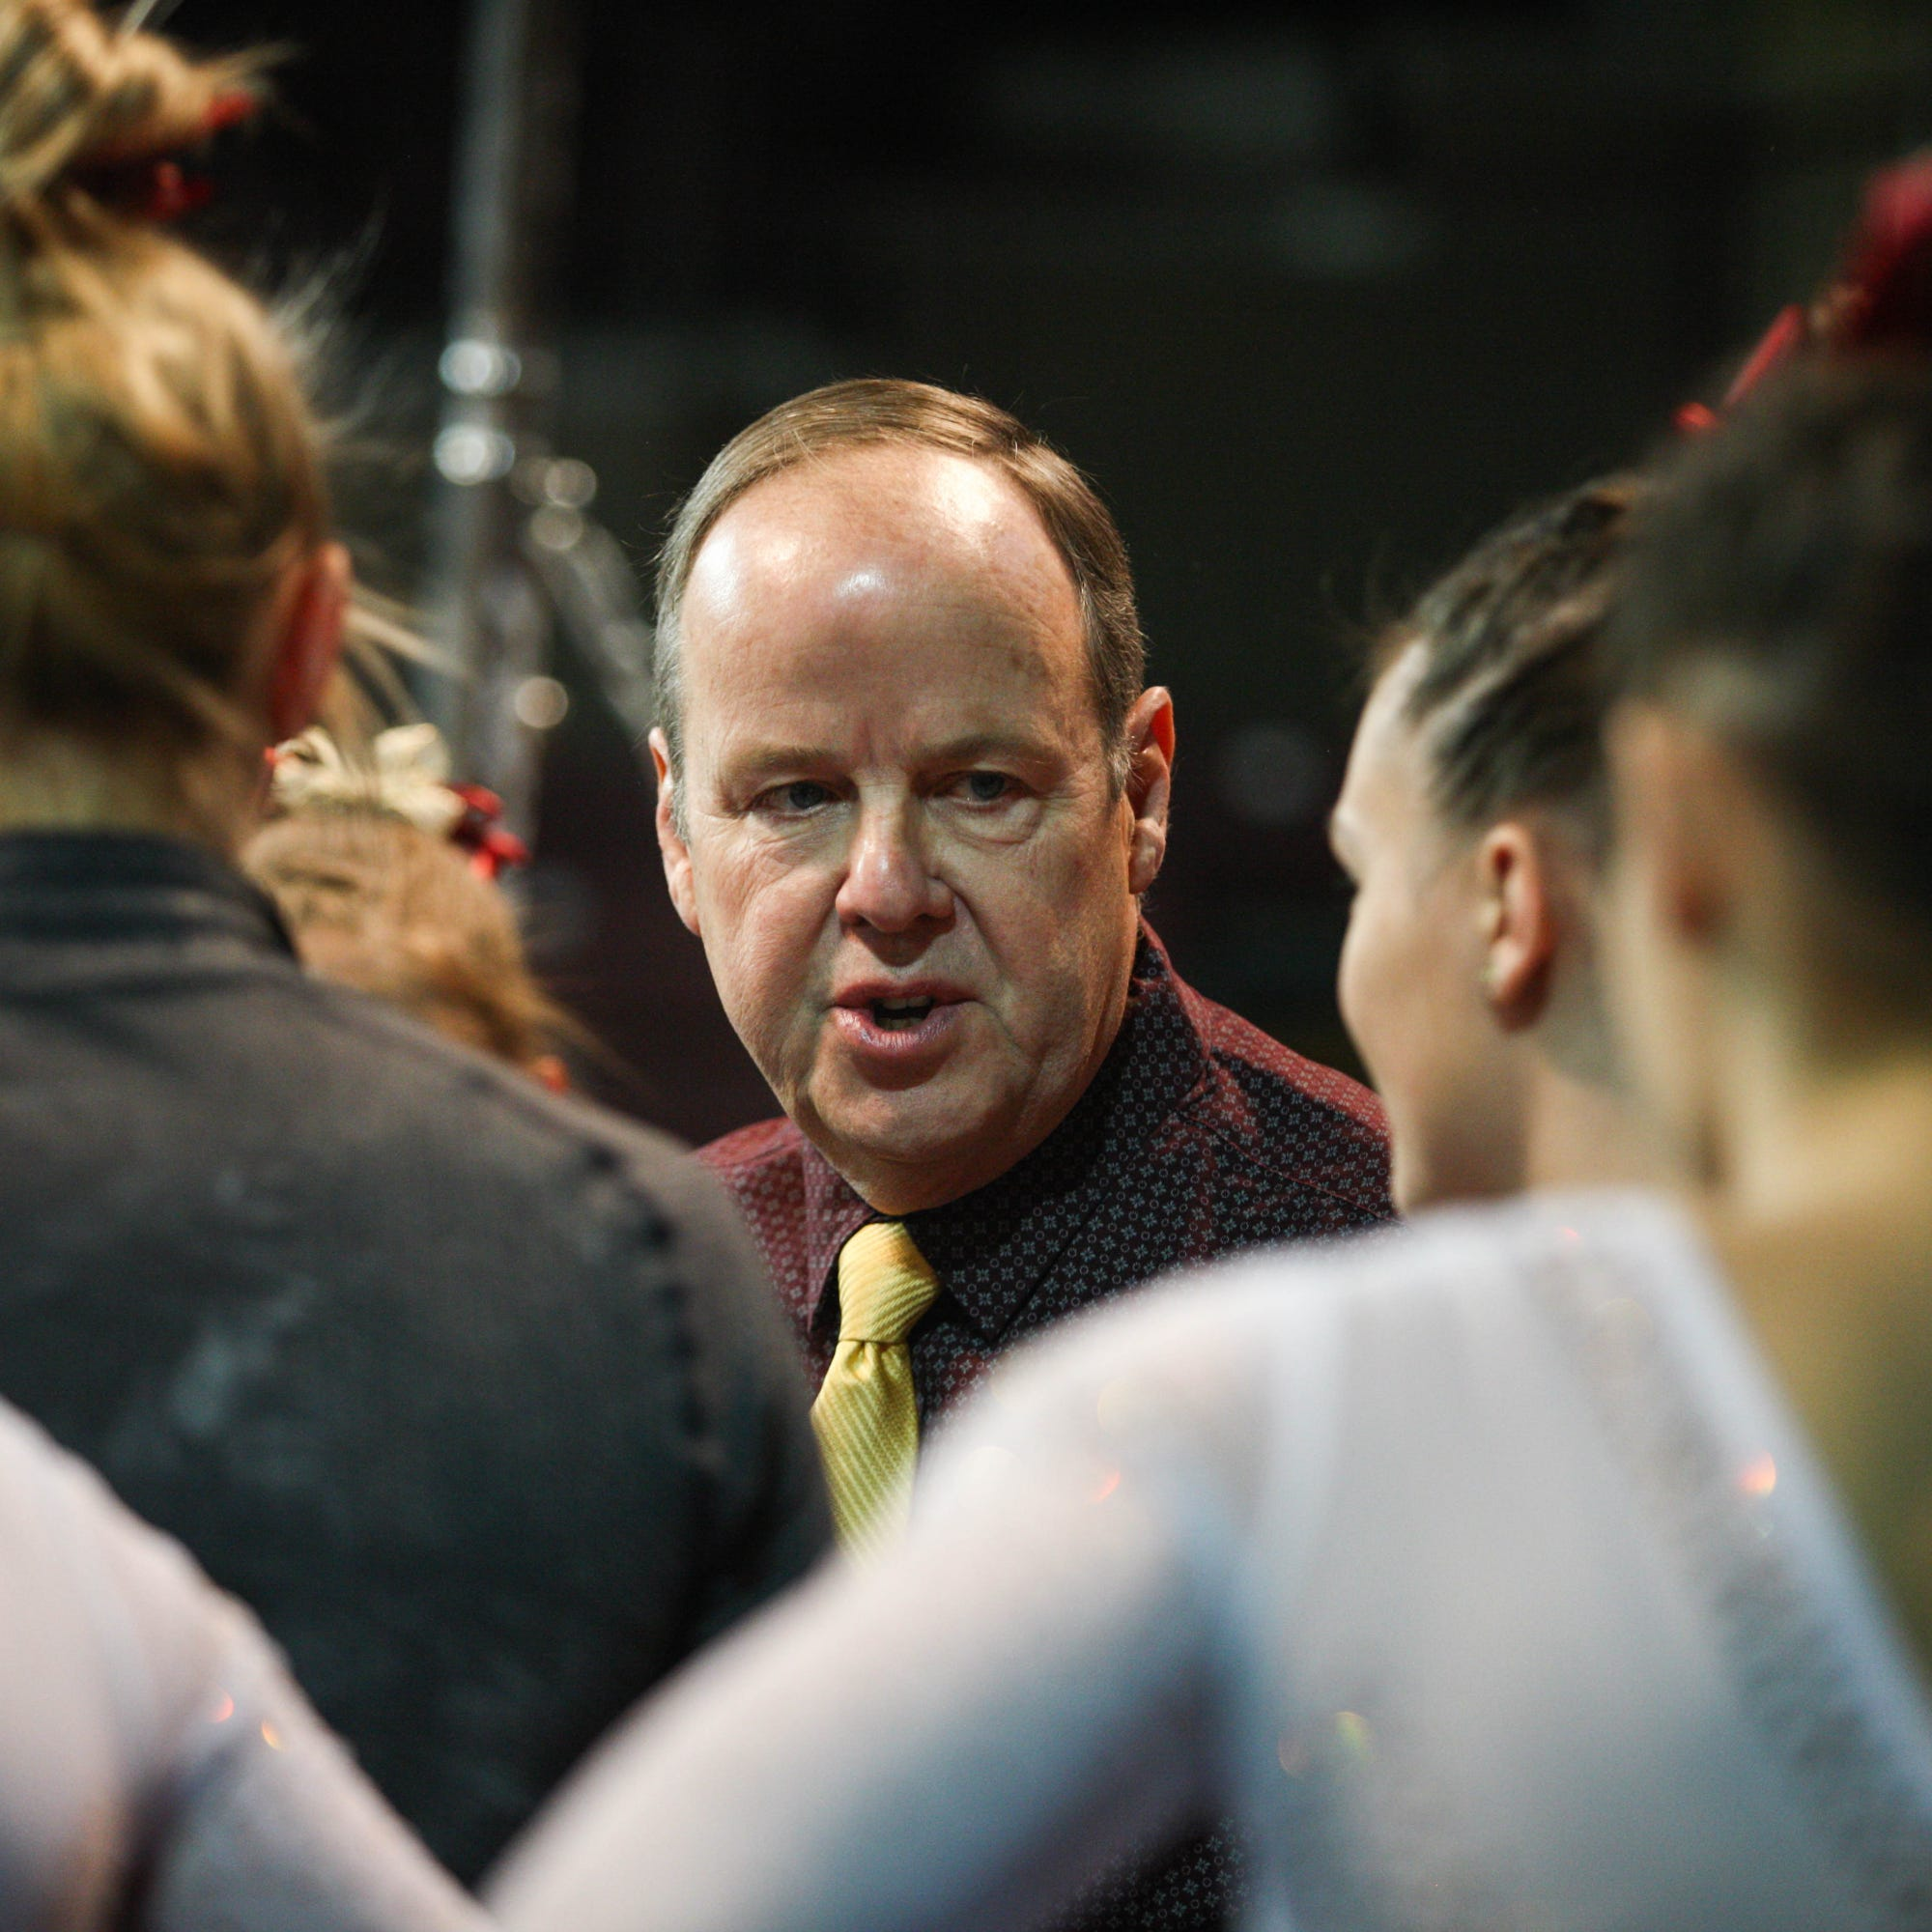 CMU fires gymnastics coach for urging athlete to lie about concussion